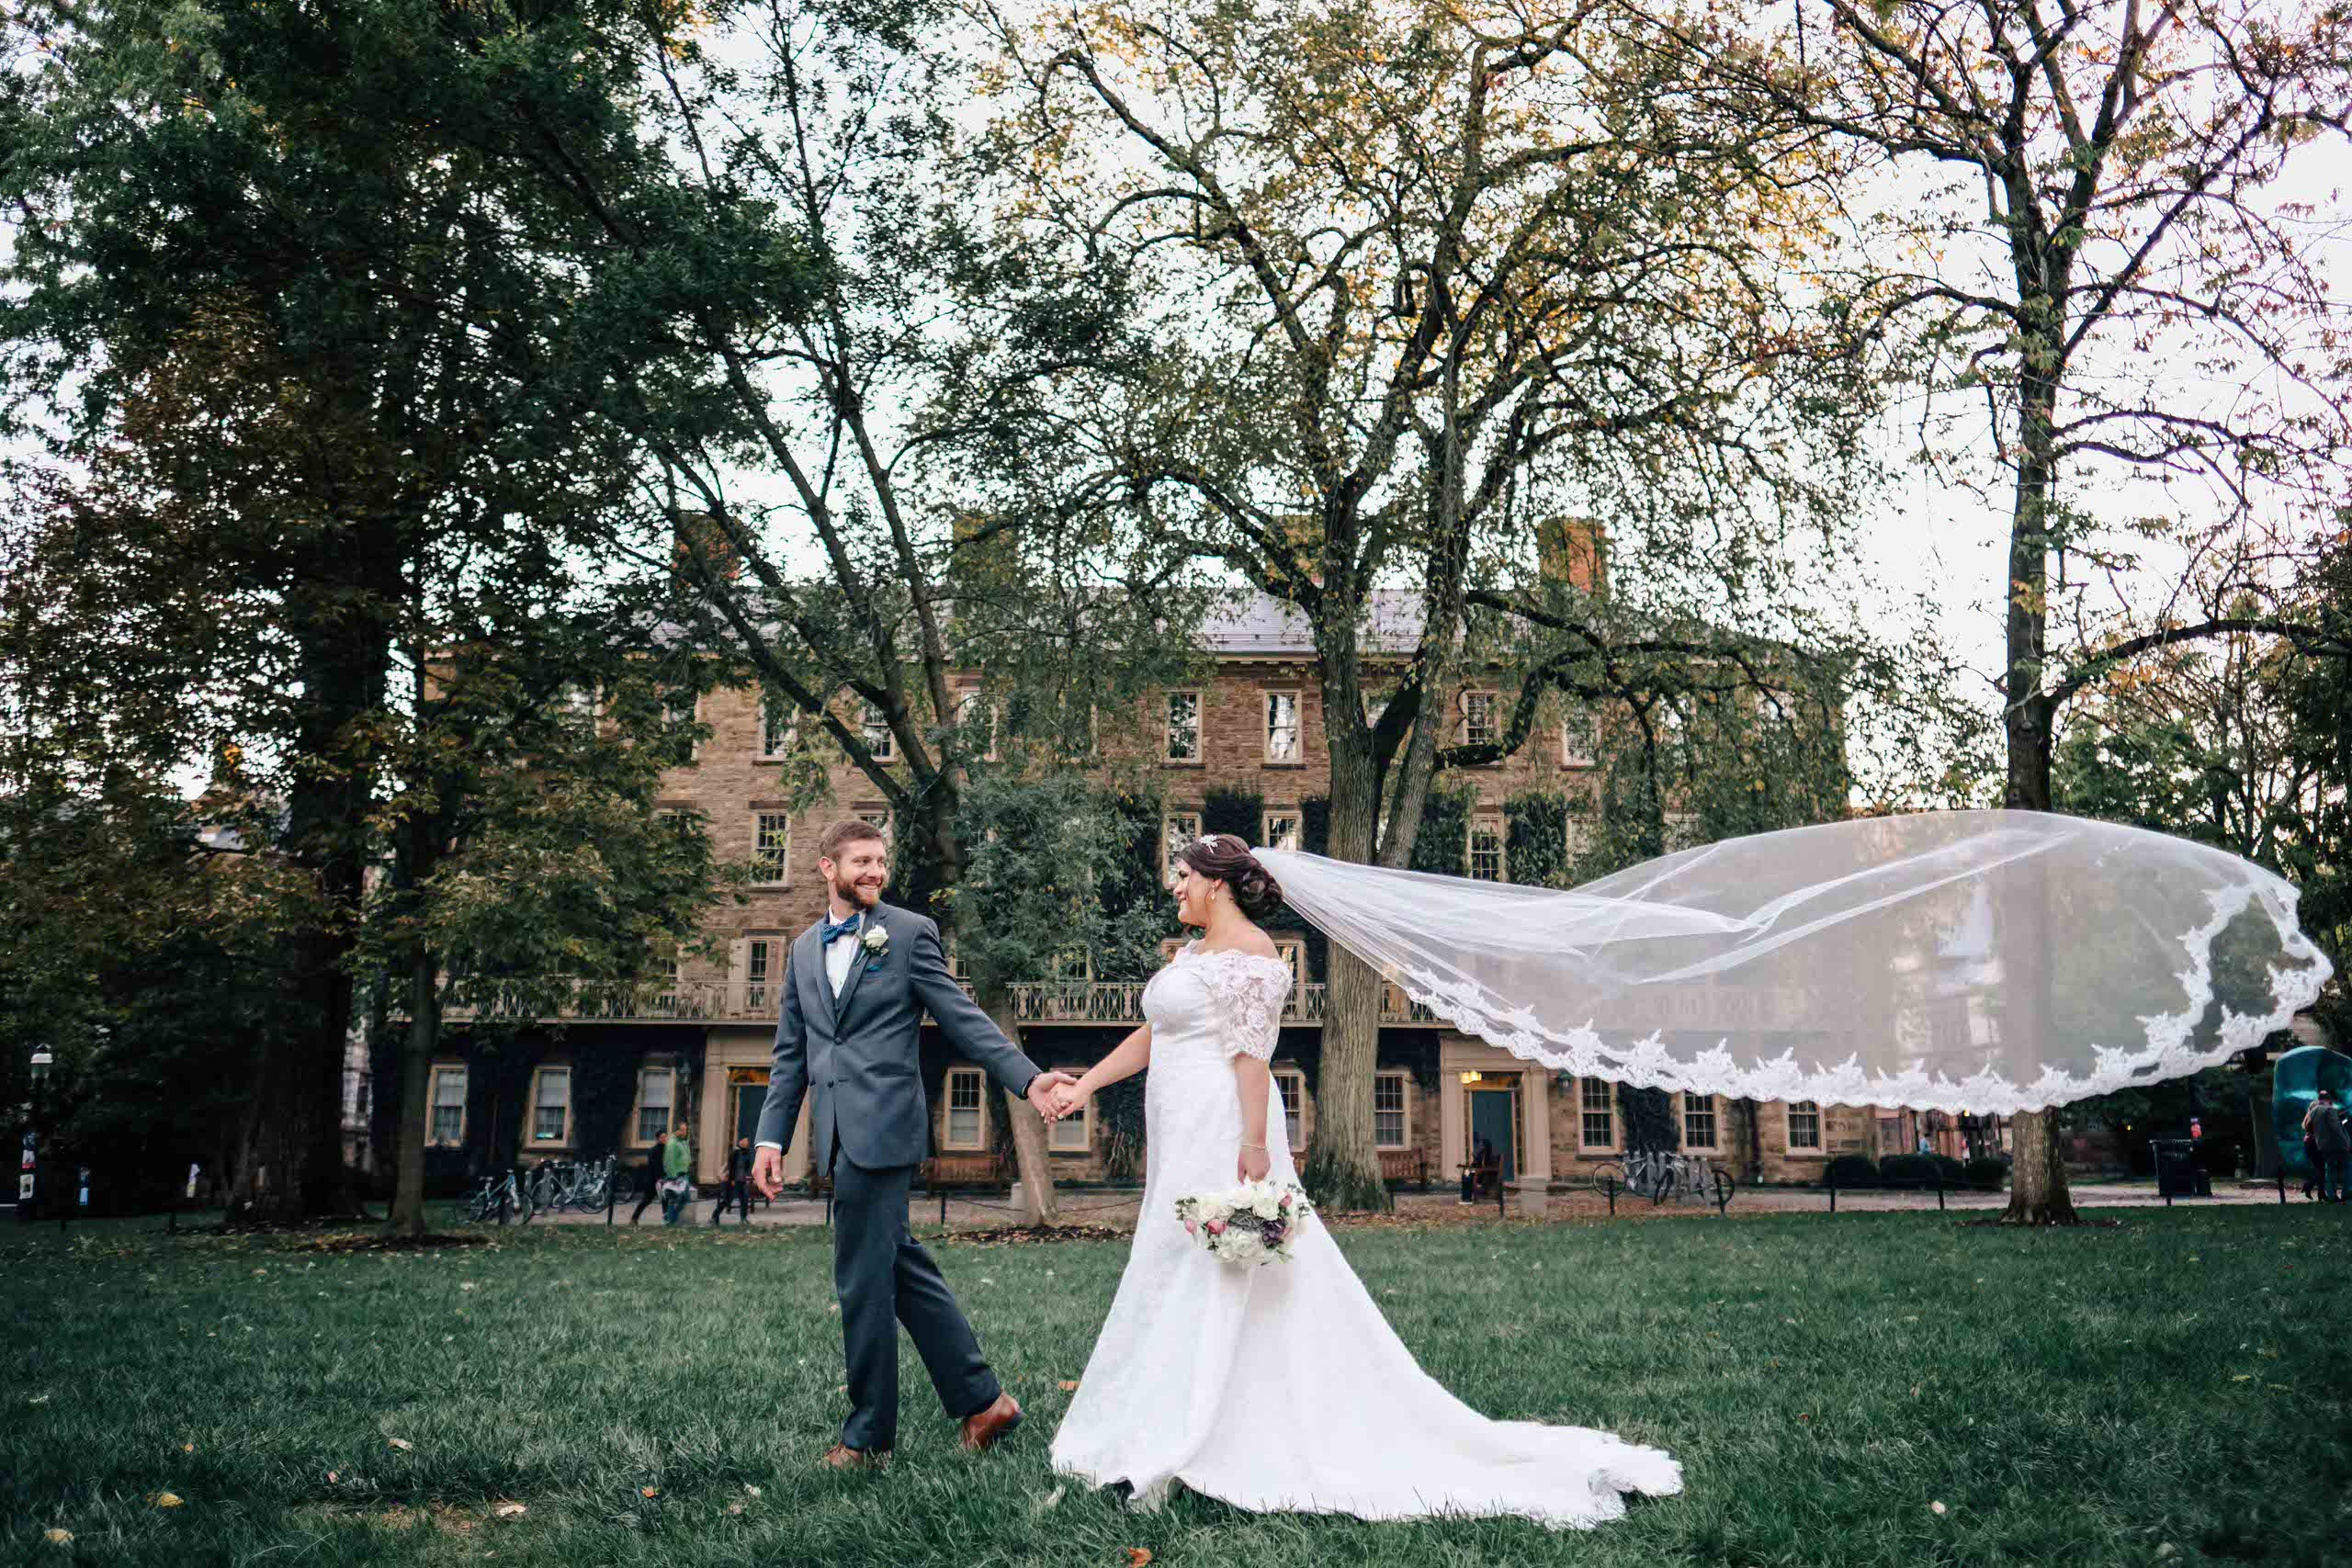 Sara and Chip's Wedding, Princeton, New Jersey